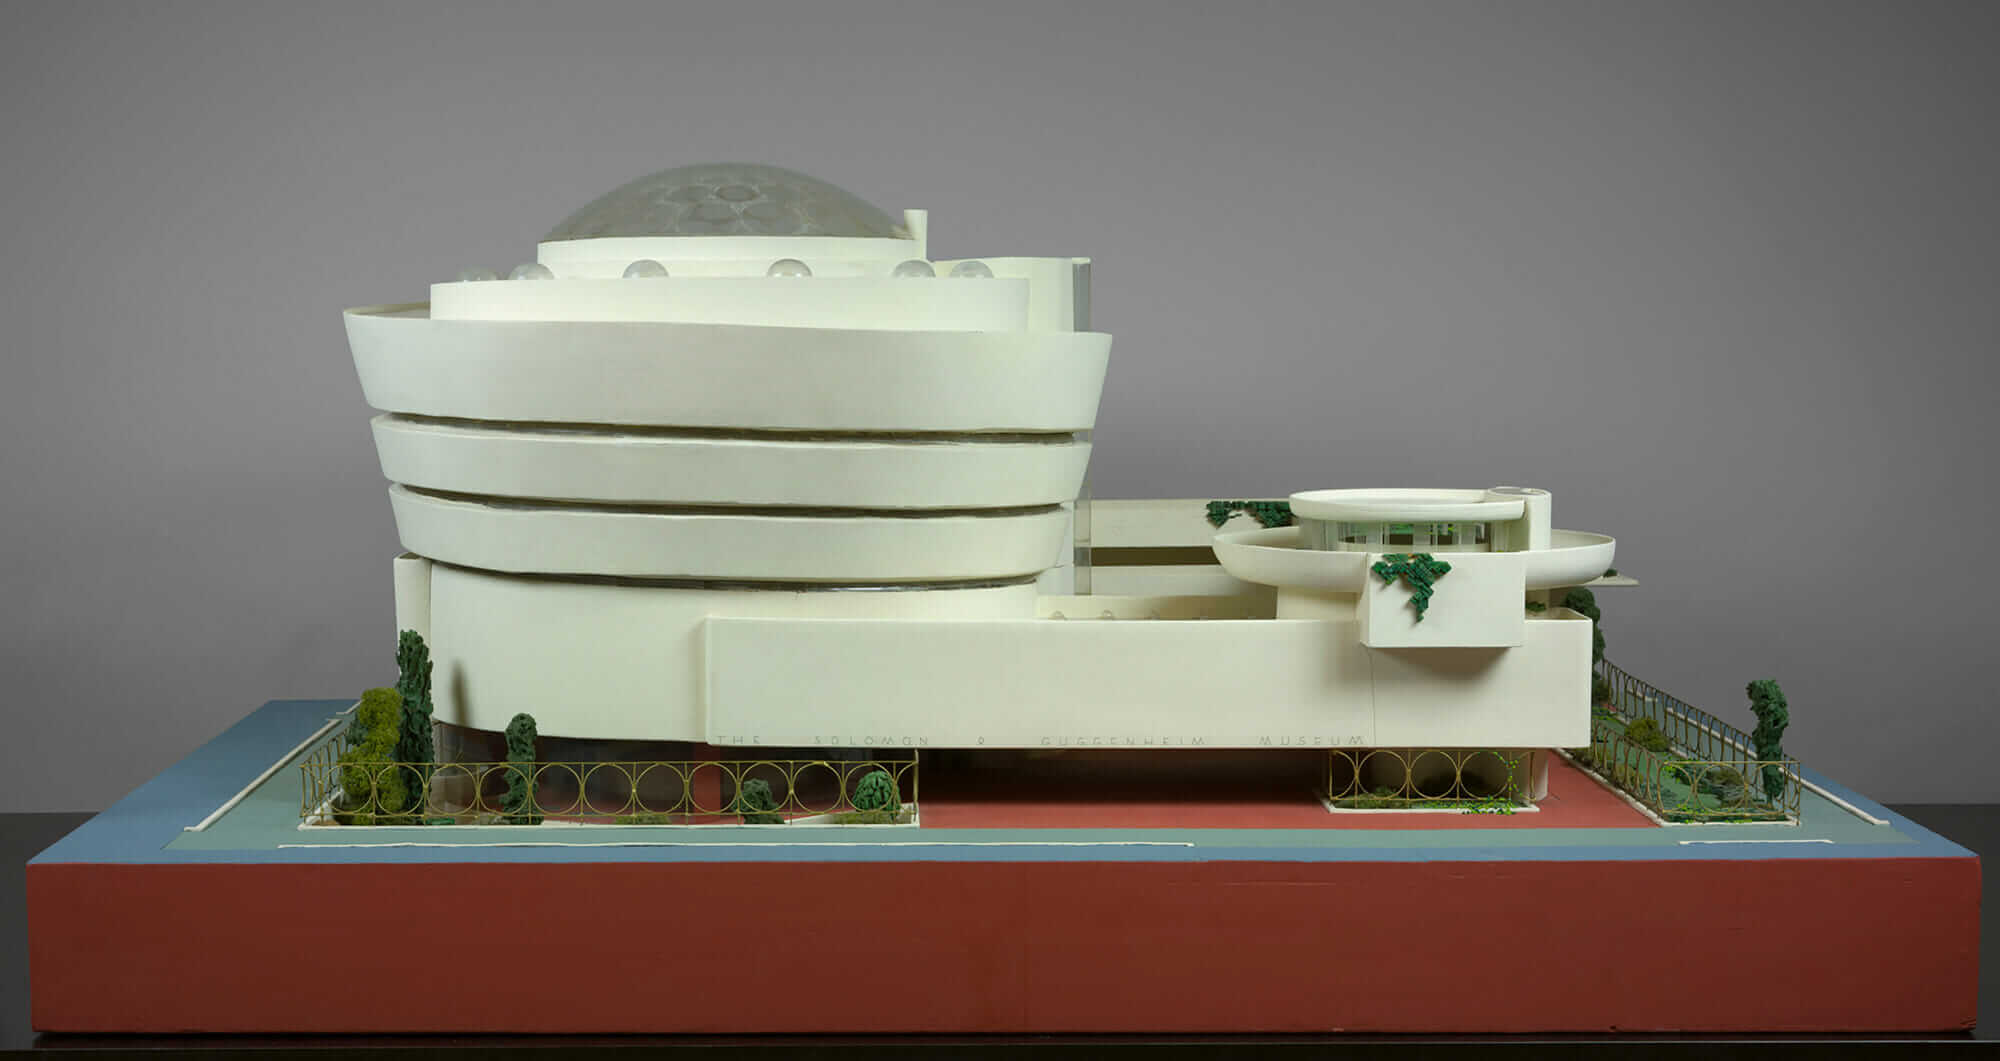 frank lloyd wright design guggenheim model